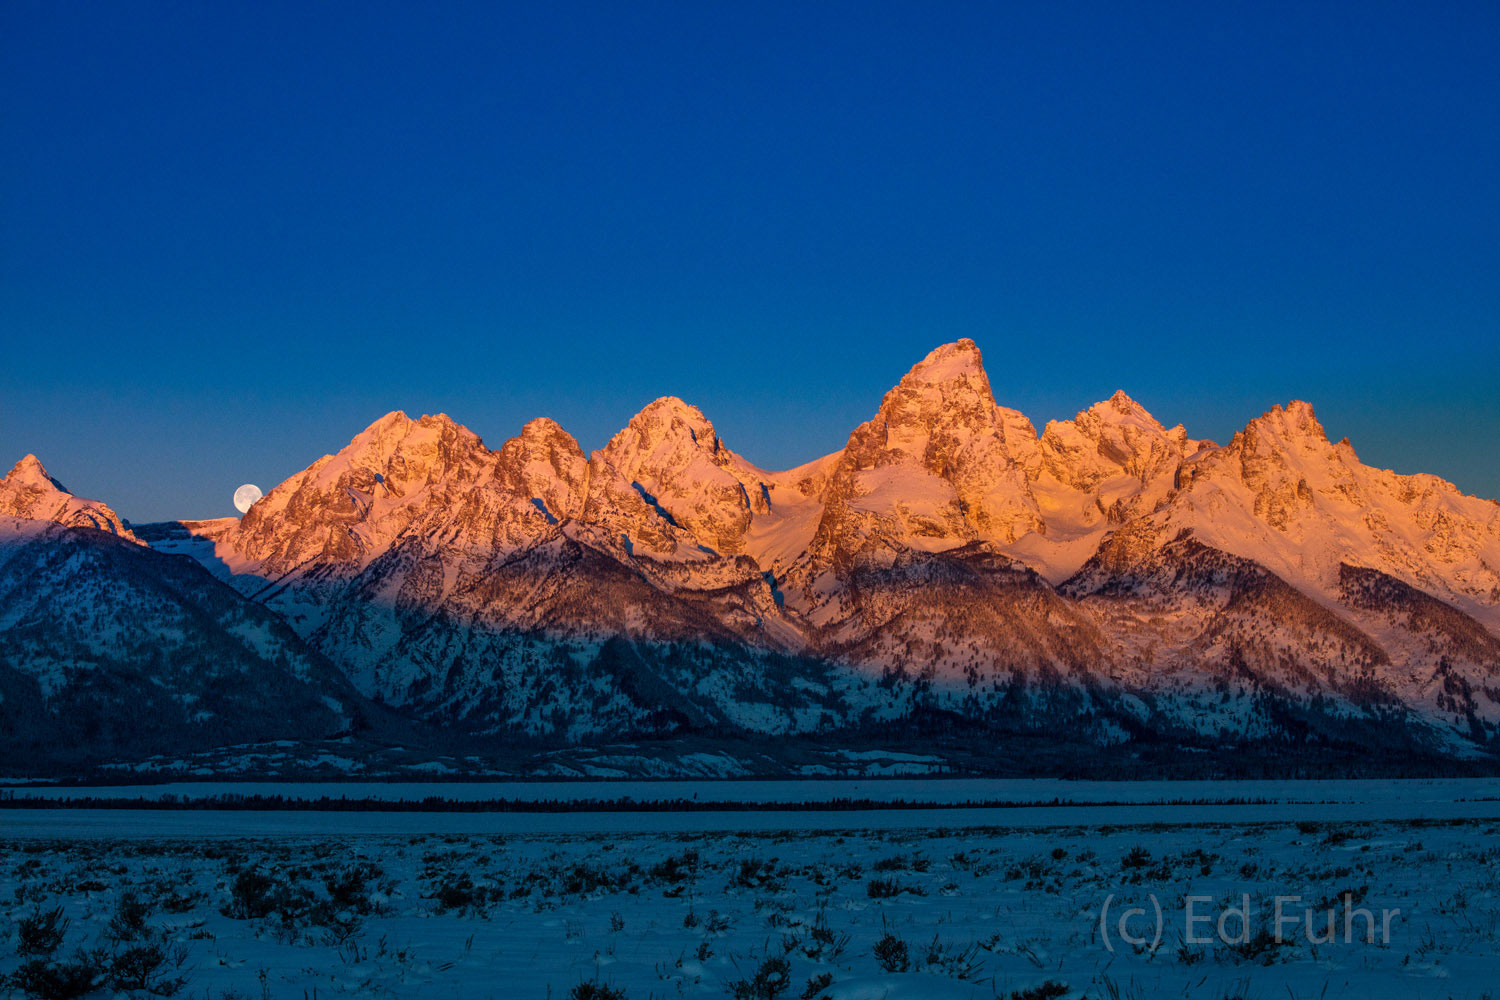 Tetons, Grand Teton, photo